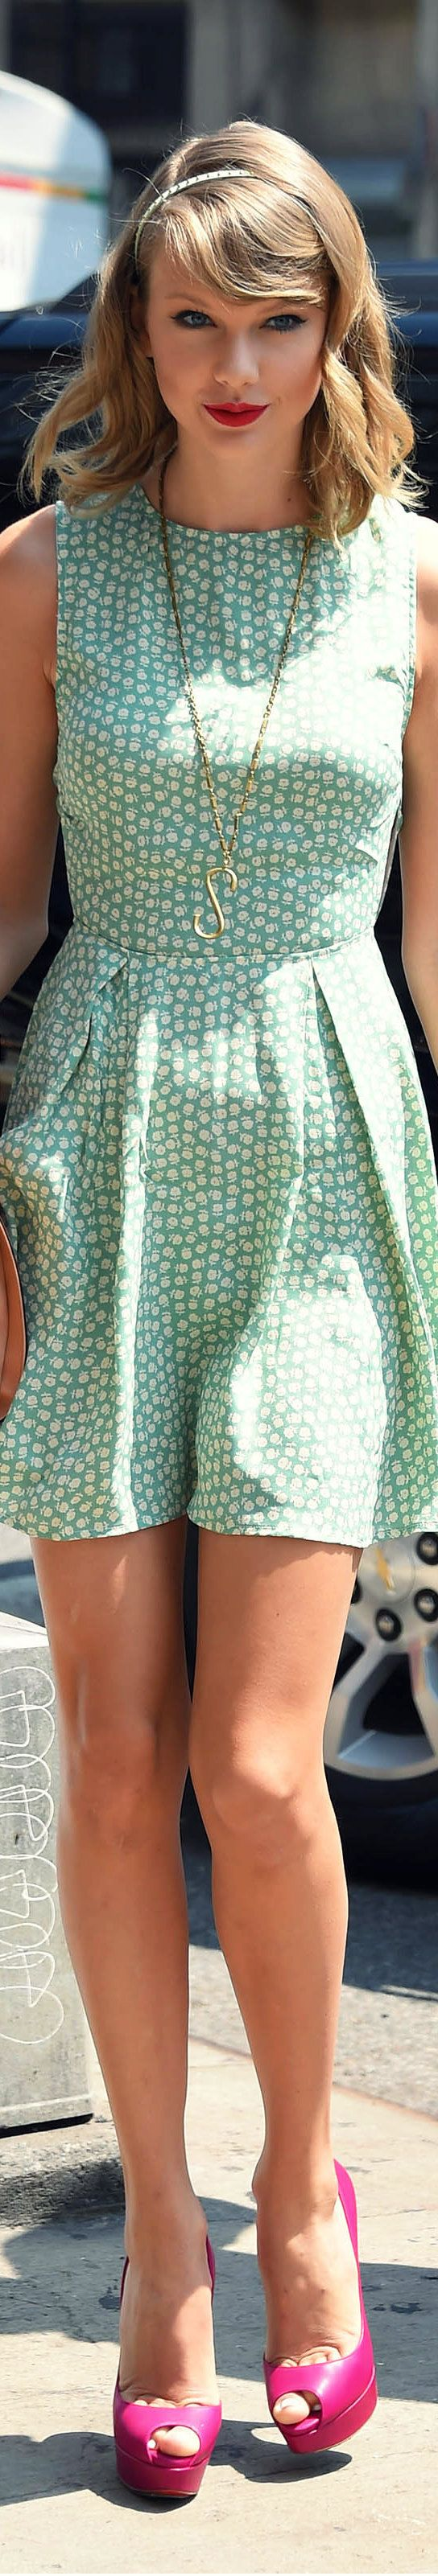 Another cute green dress. This could be one of Taylor's best colors.